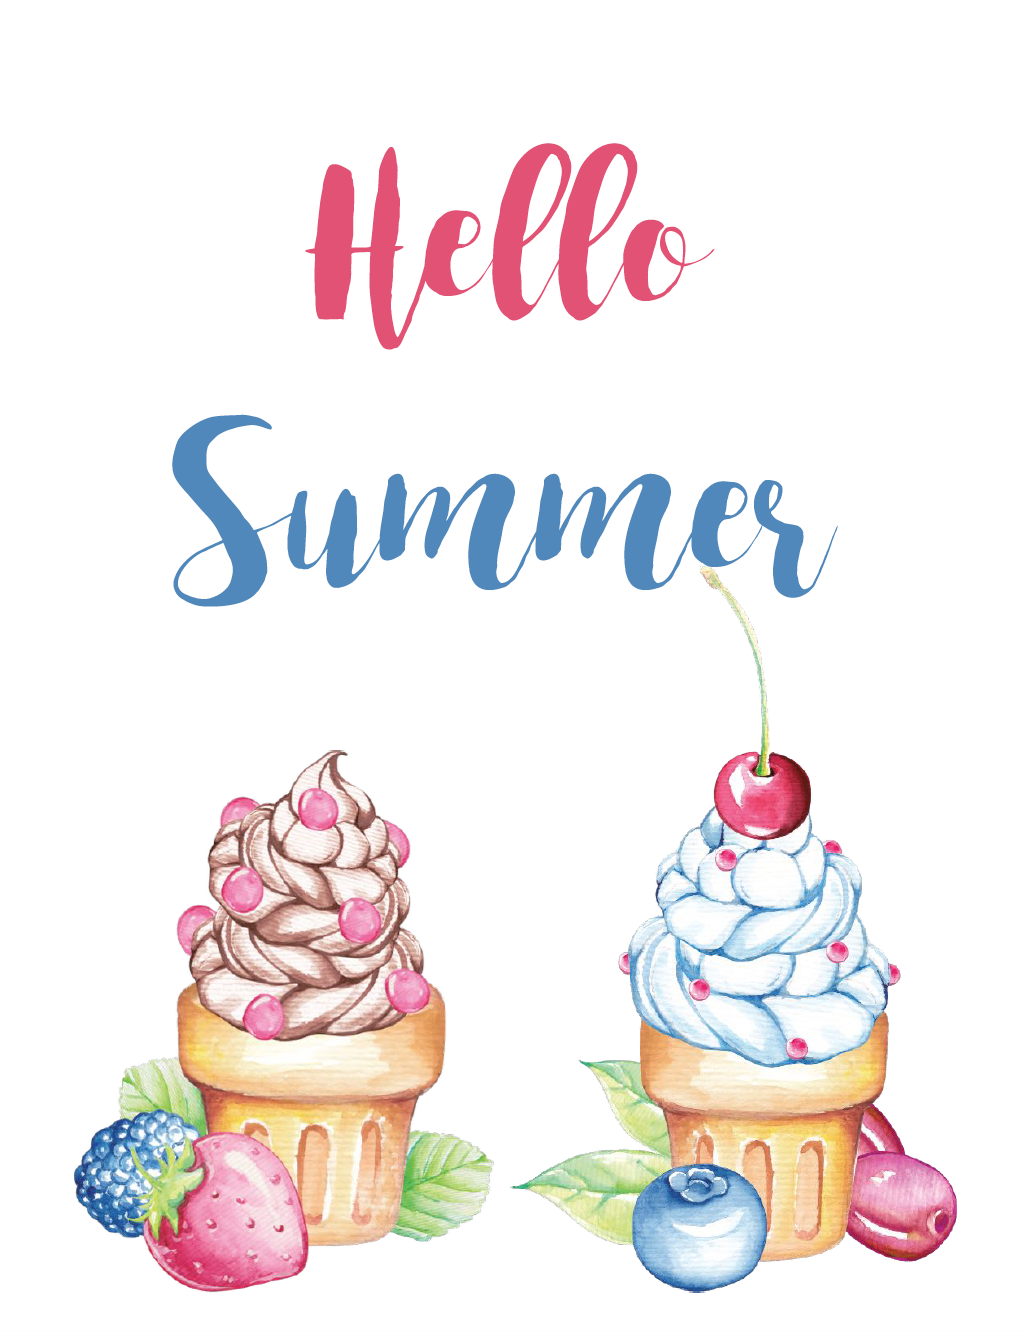 Hello Summer Free Summer Printable. Celebrate summer and brighten up your decor with 4 free summer printables.